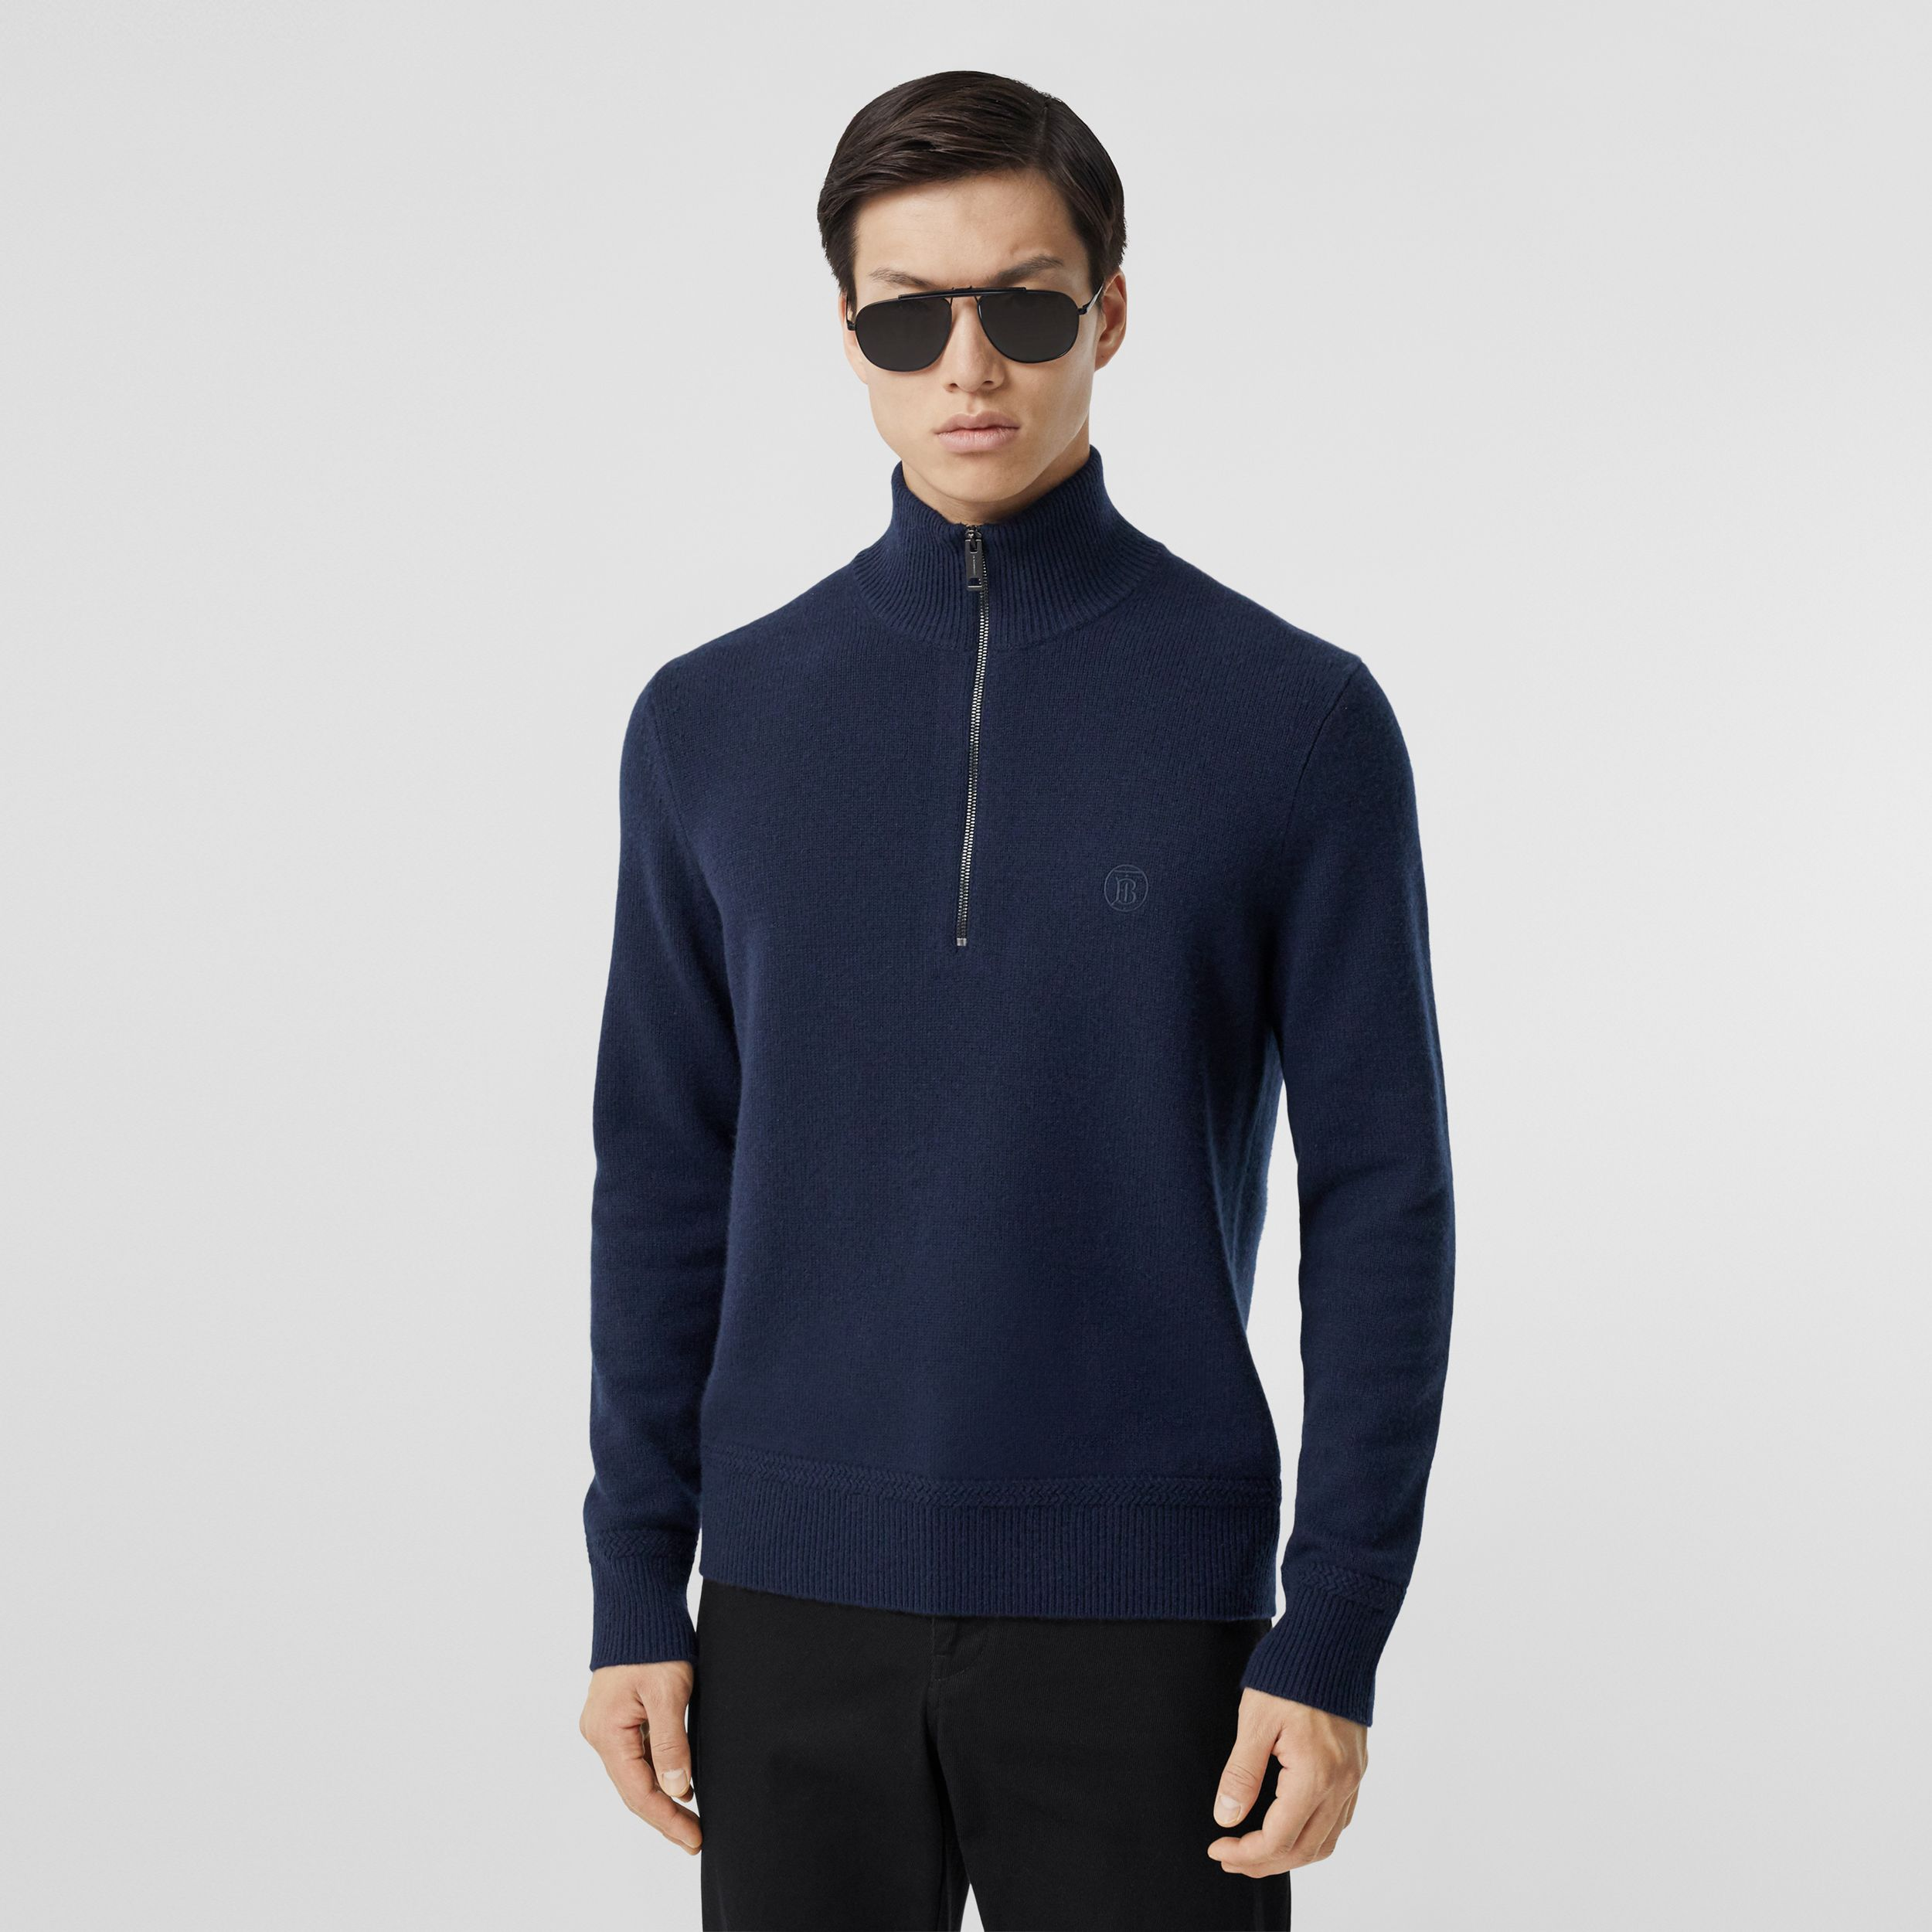 Monogram Motif Cashmere Funnel Neck Sweater in Navy - Men | Burberry United Kingdom - 1